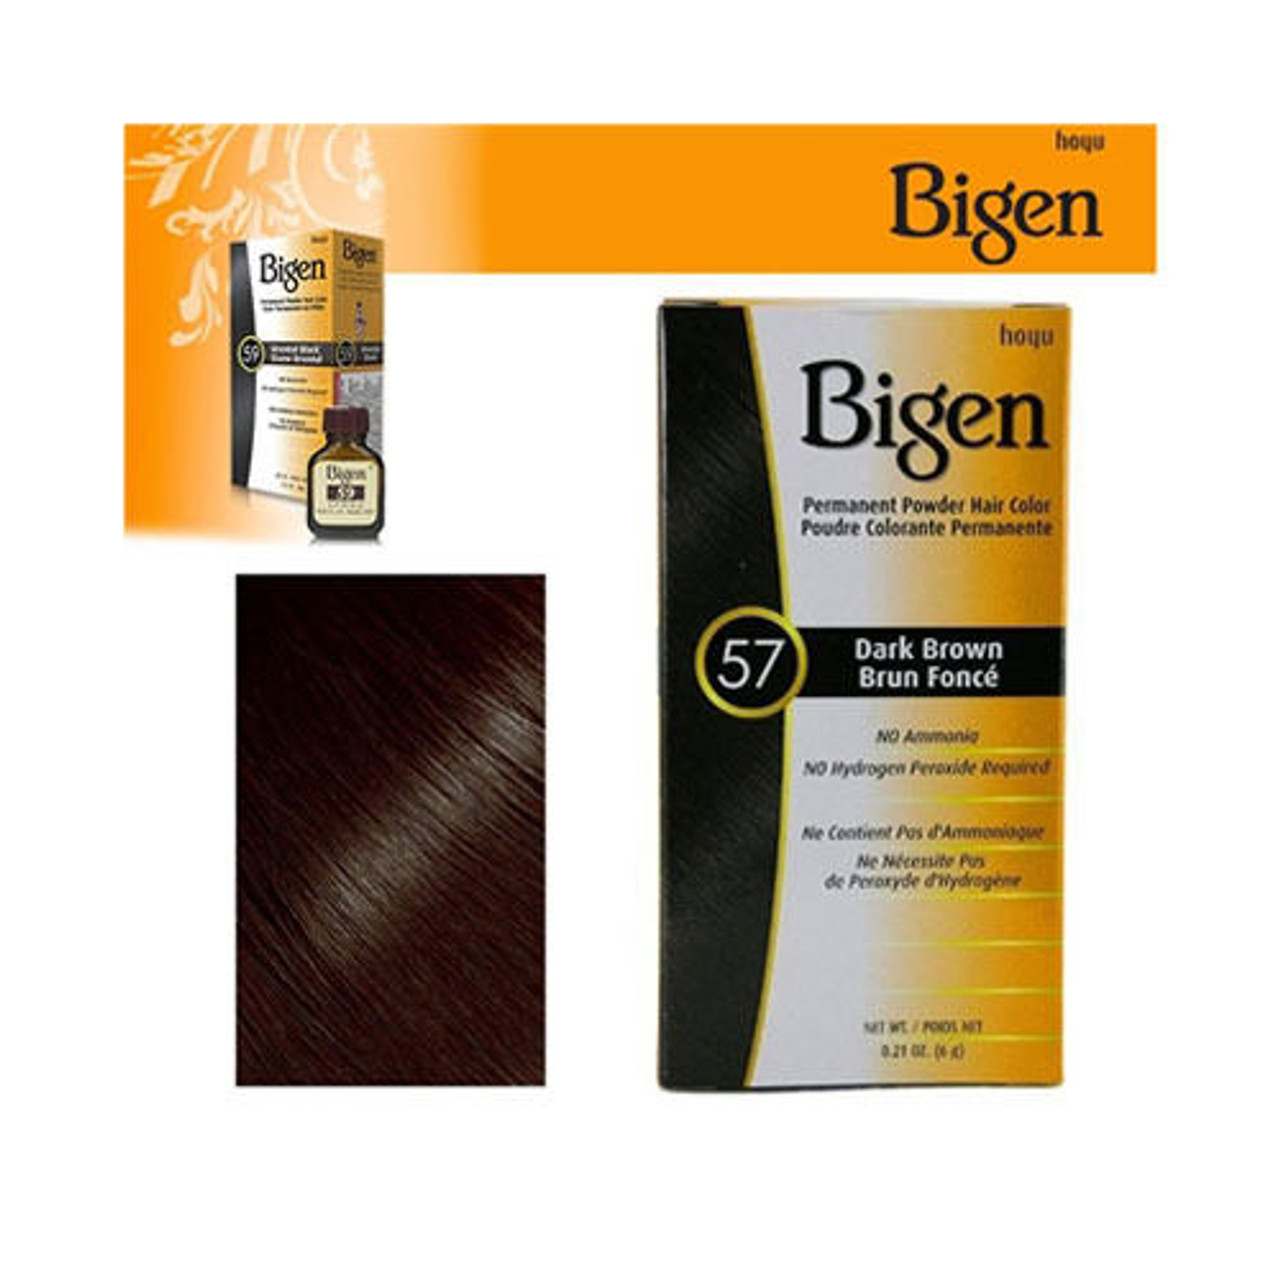 Bigen Dark Brown 57 0.21 oz